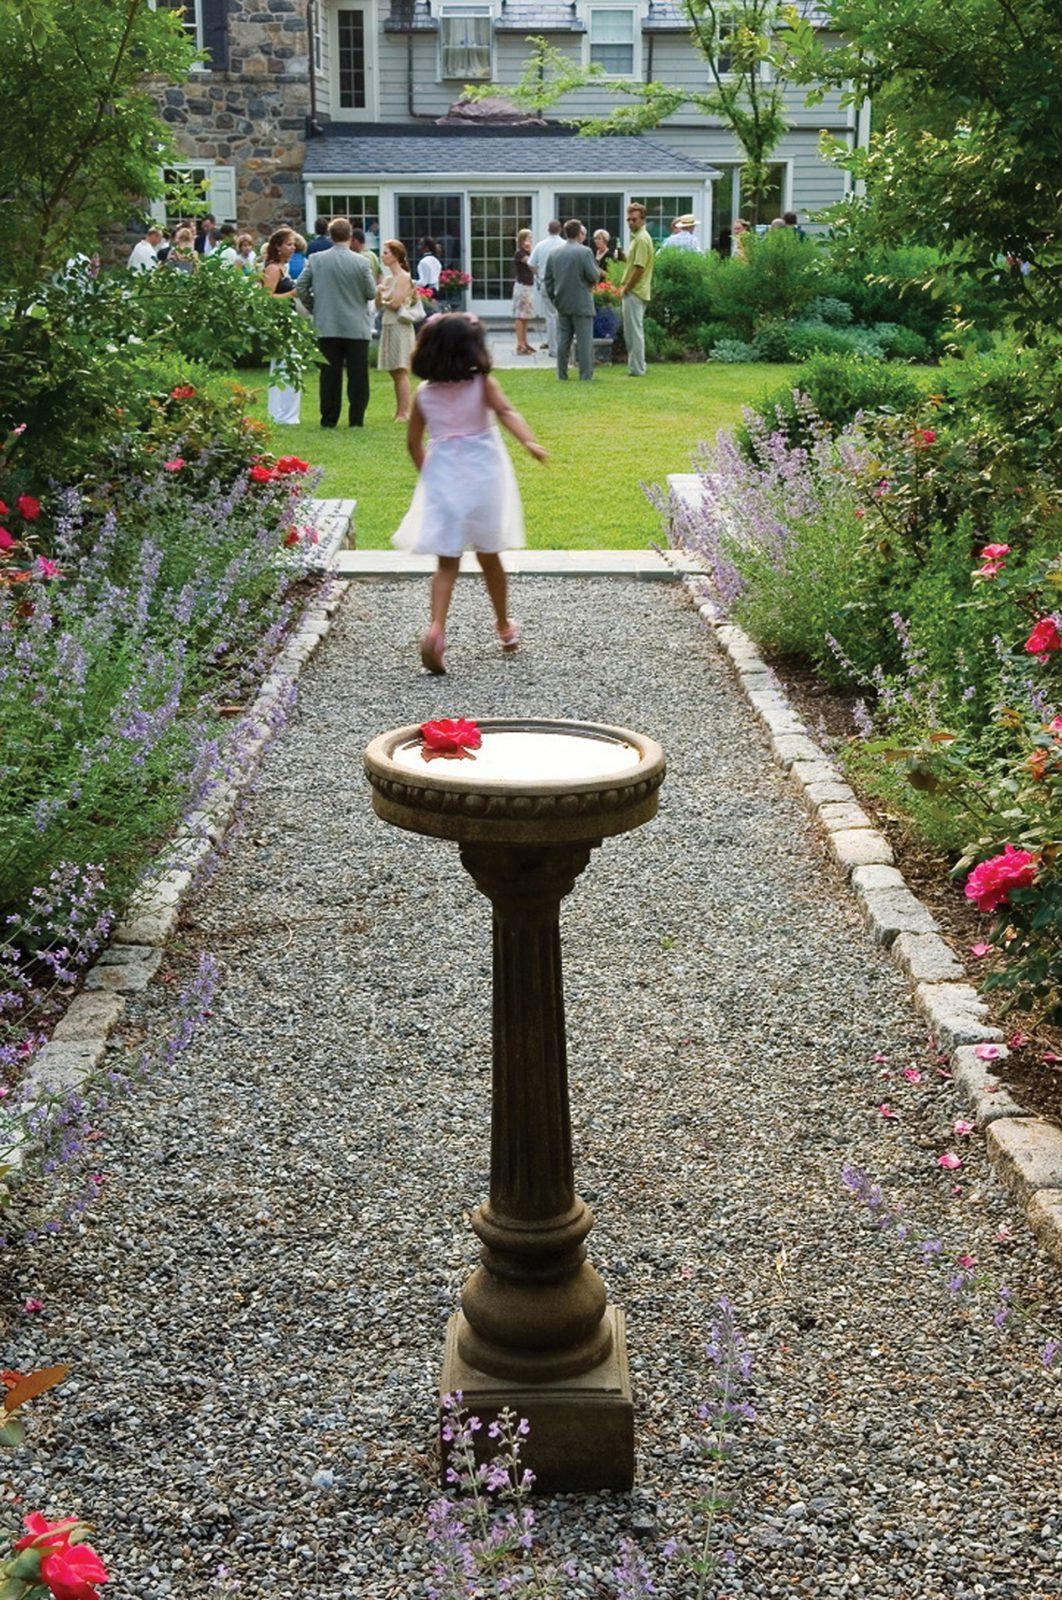 pebble-path-bird-bath-landscpae-design-birdbath-pathway-west-chester-pa